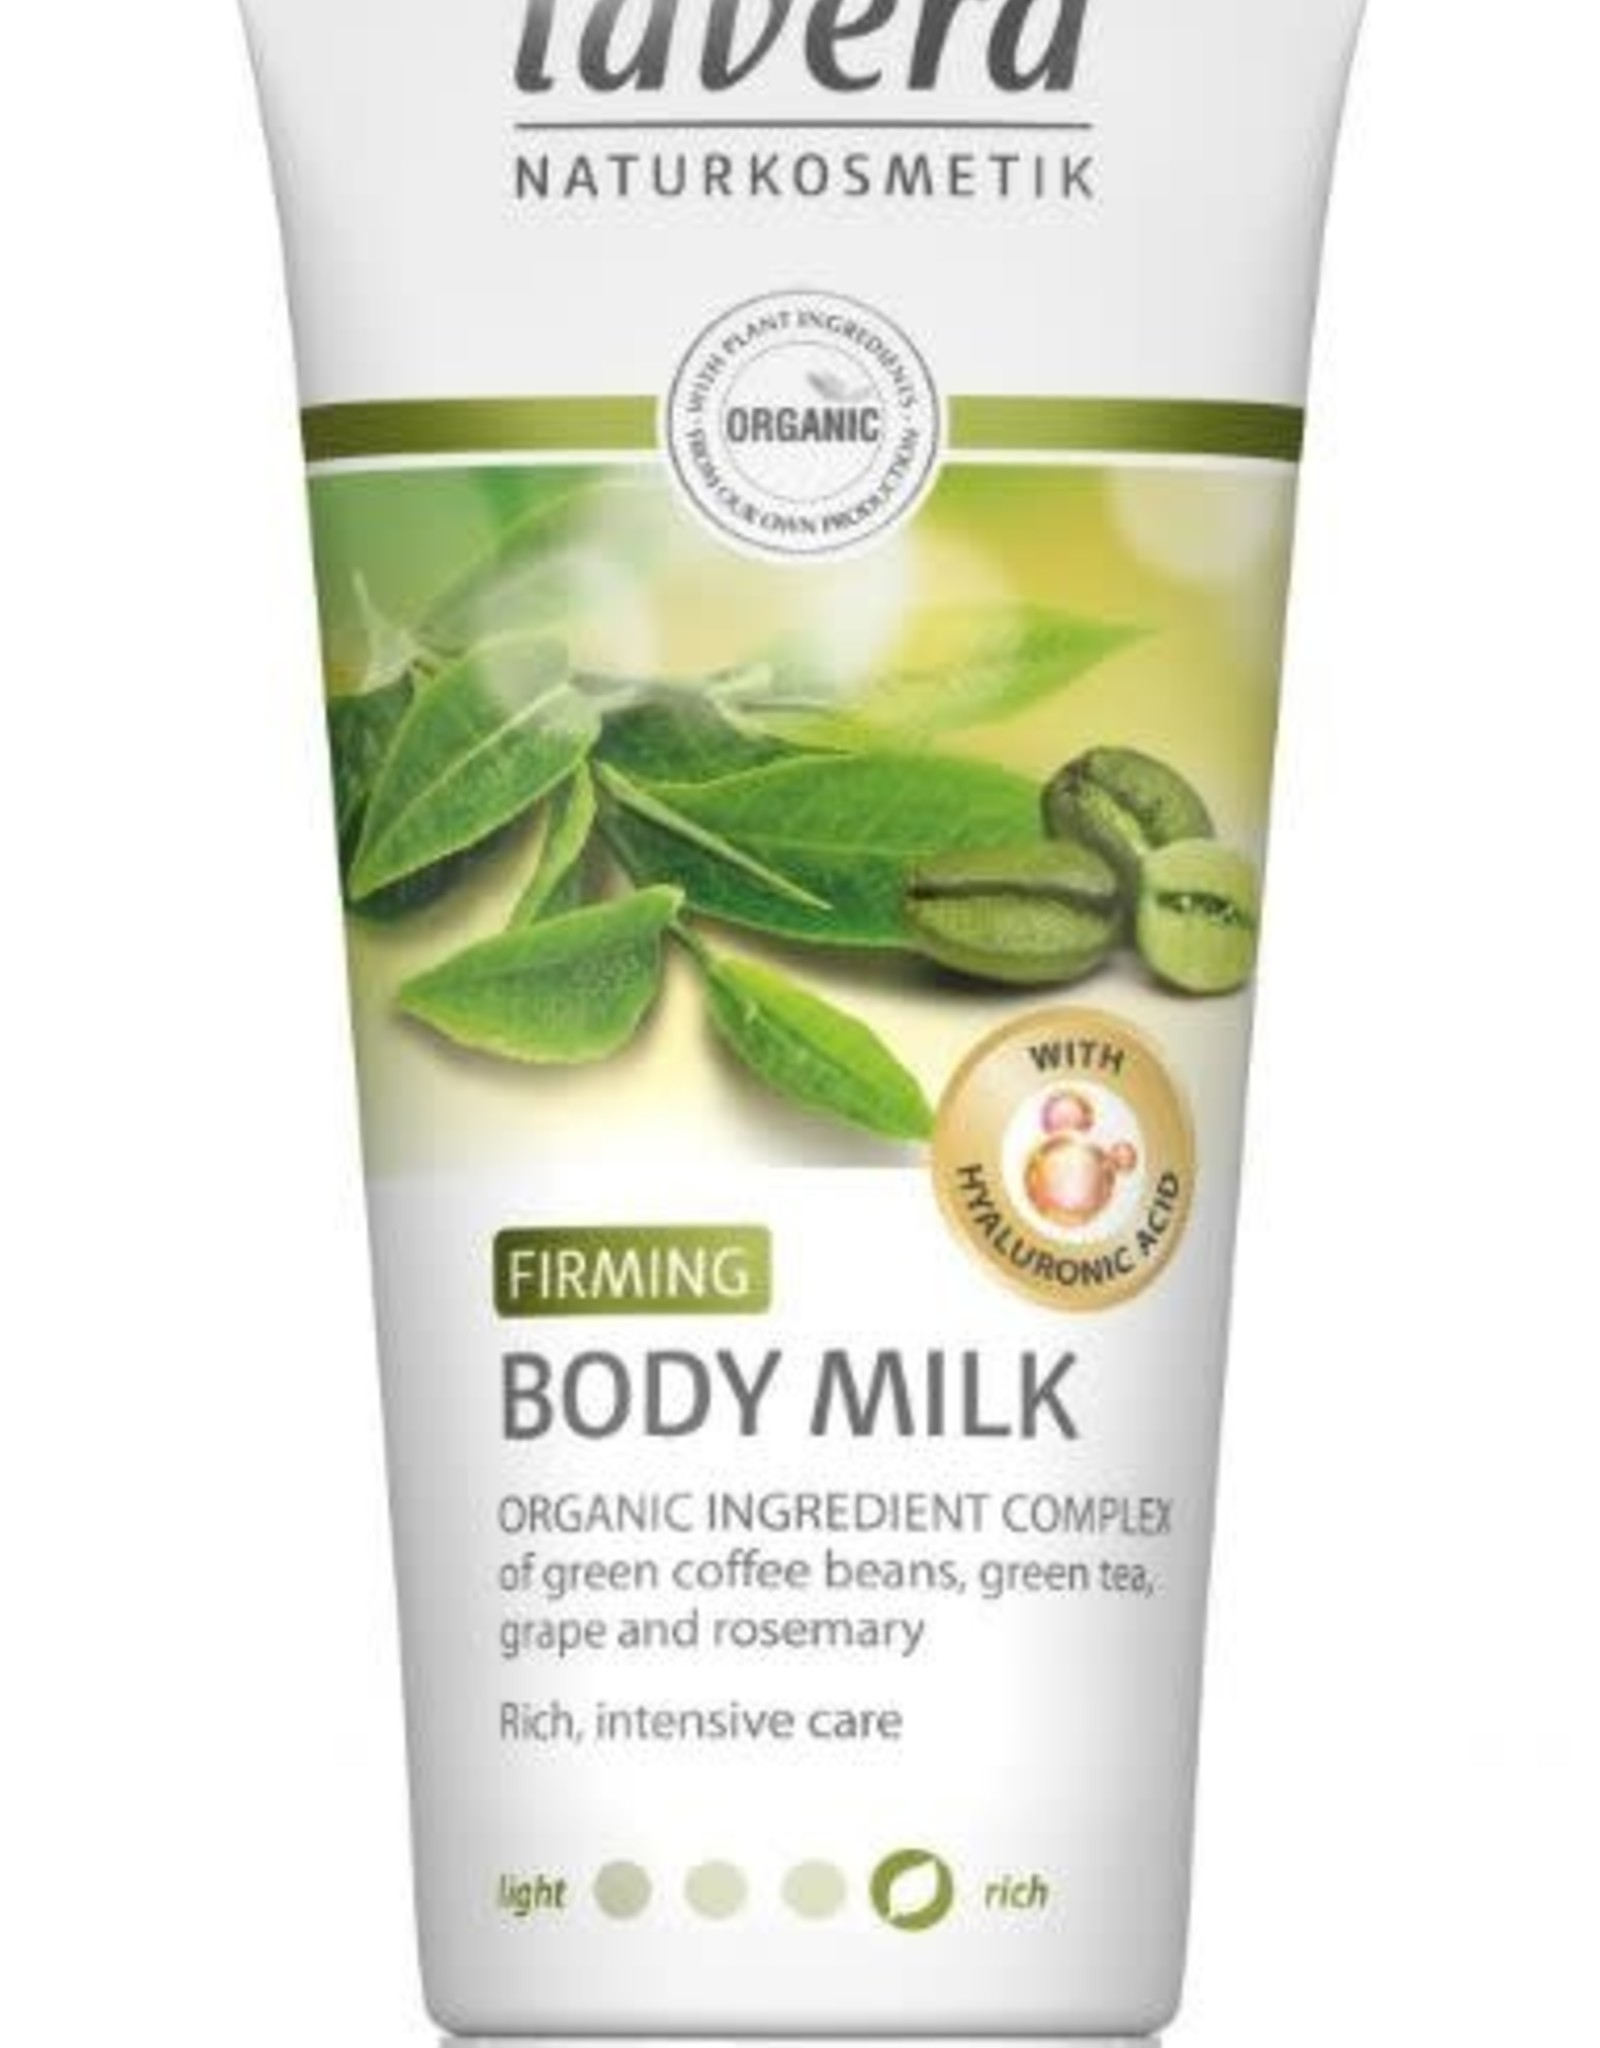 Lavera Bodymilk Firming coffee beans, green tea, grape and rosemary 200ml